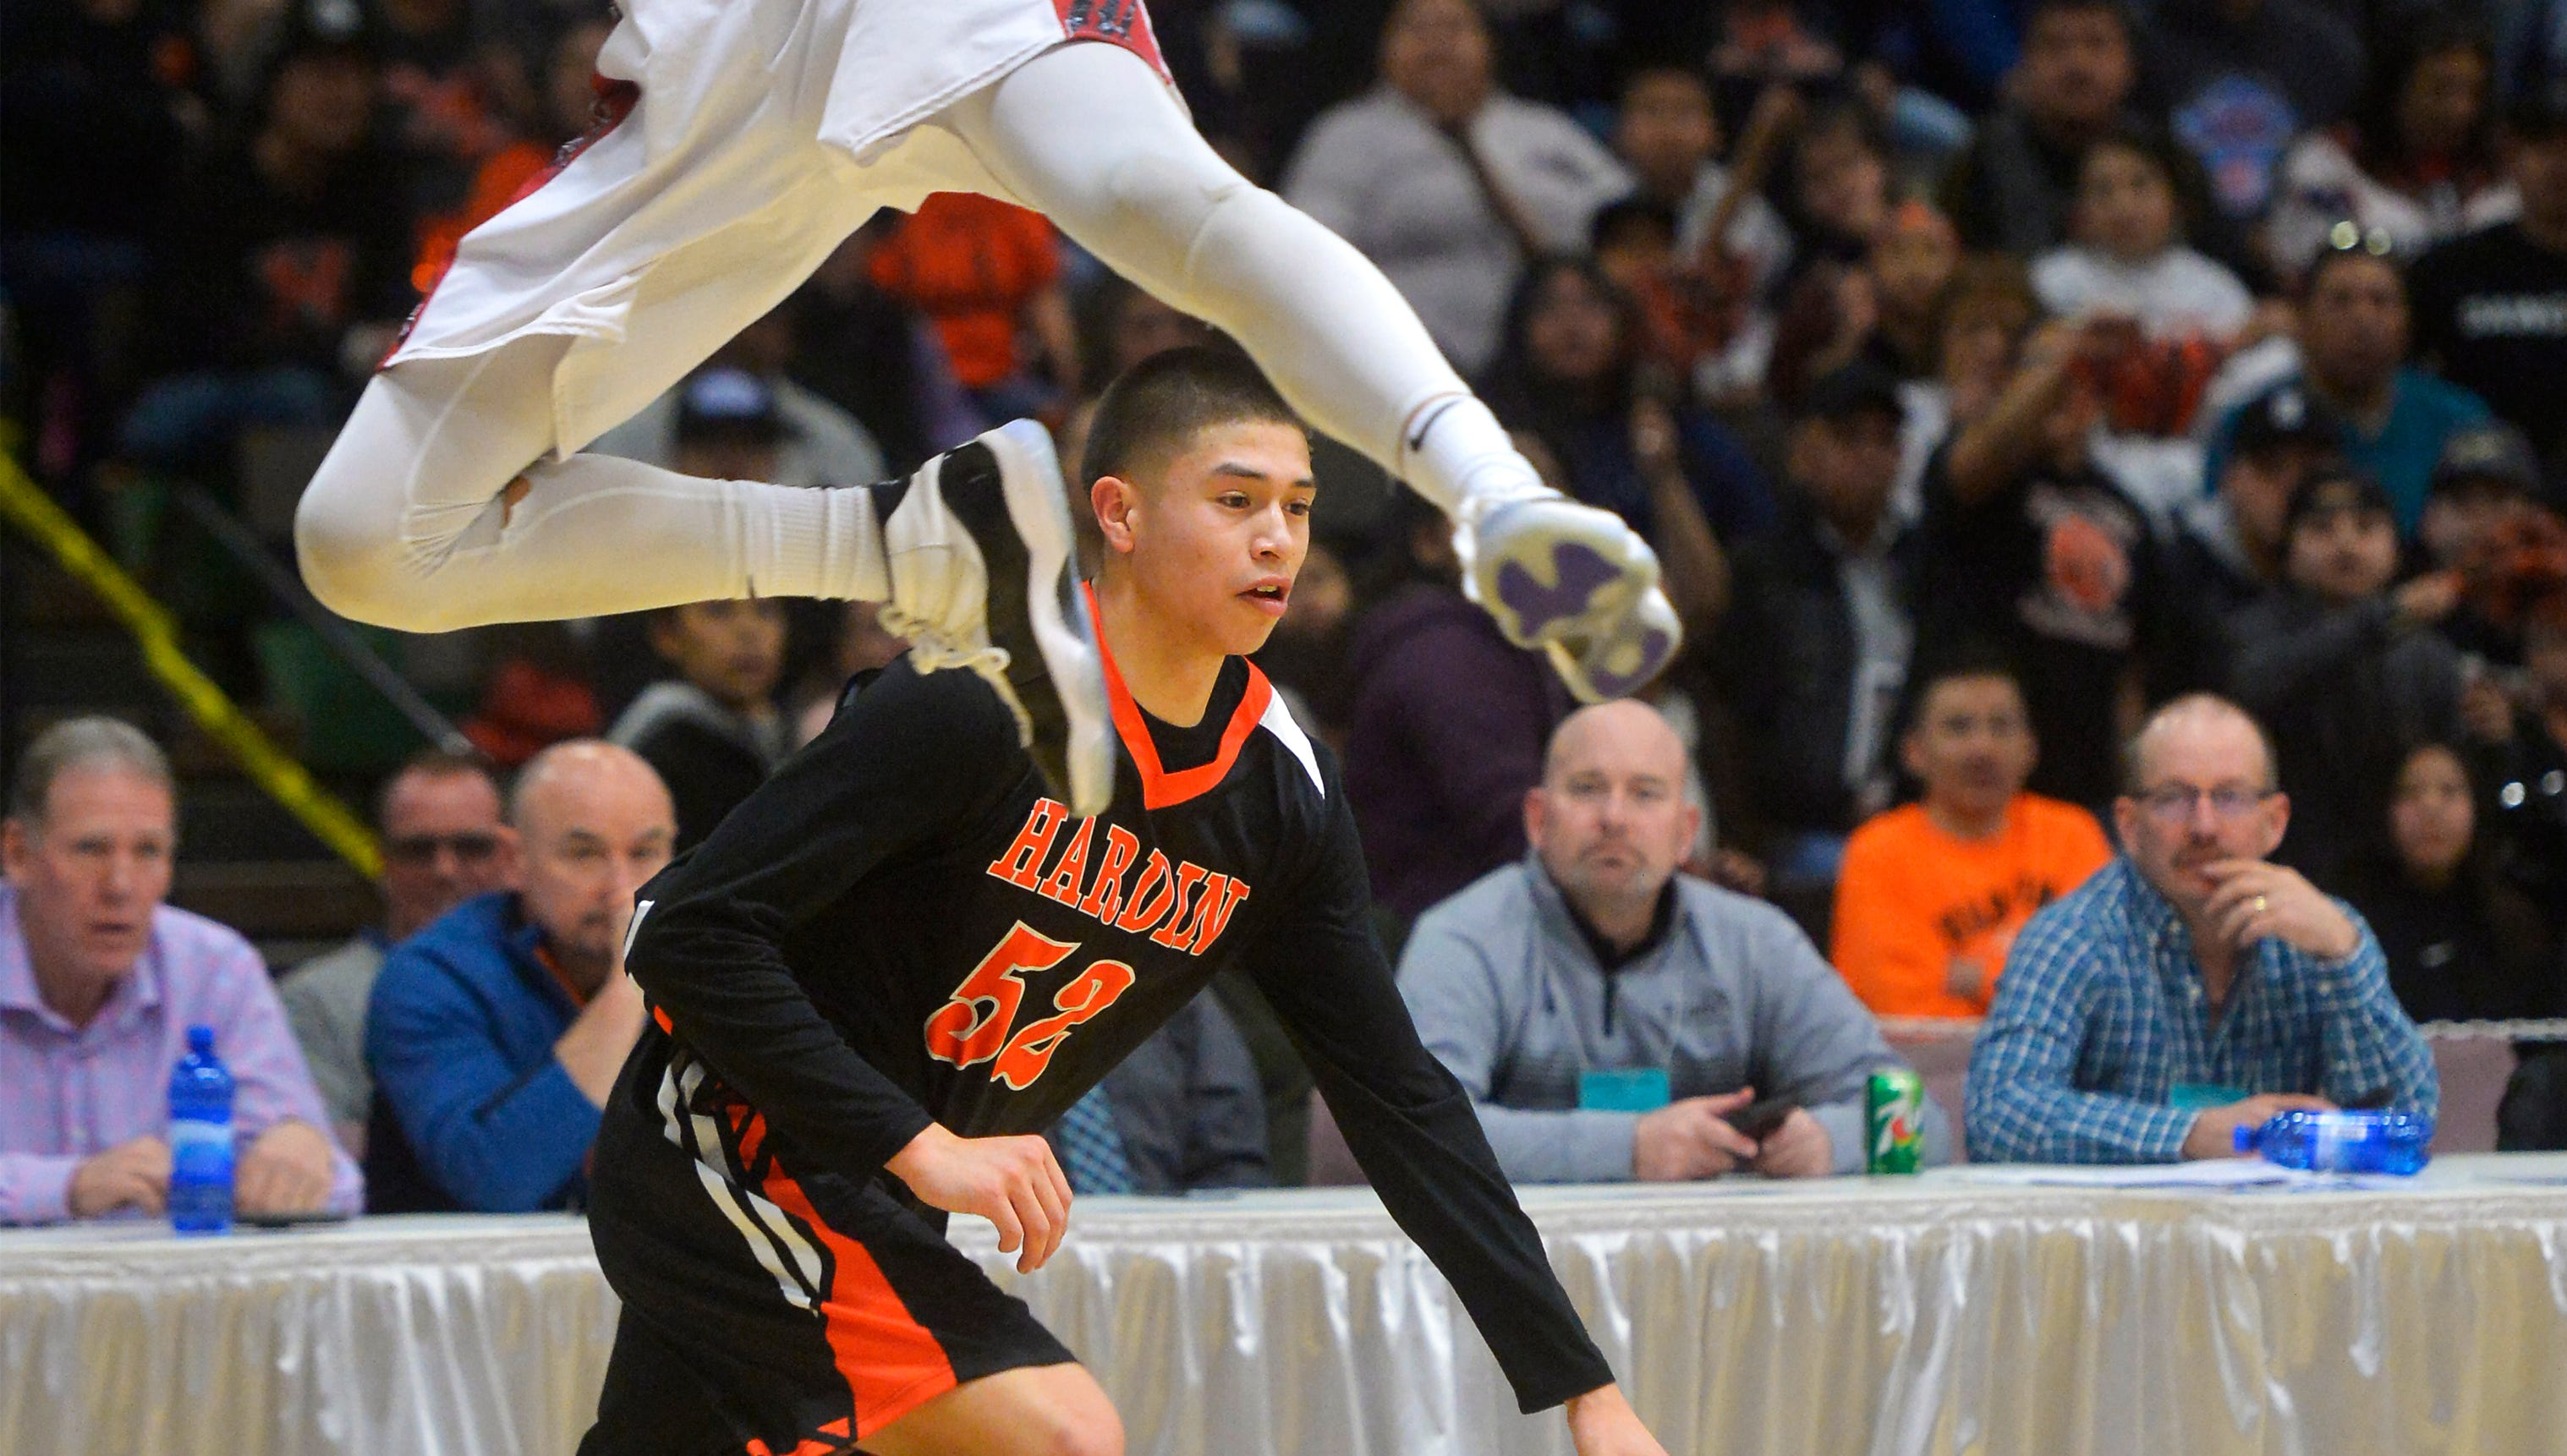 Hardin rallies in second half to defeat Browning